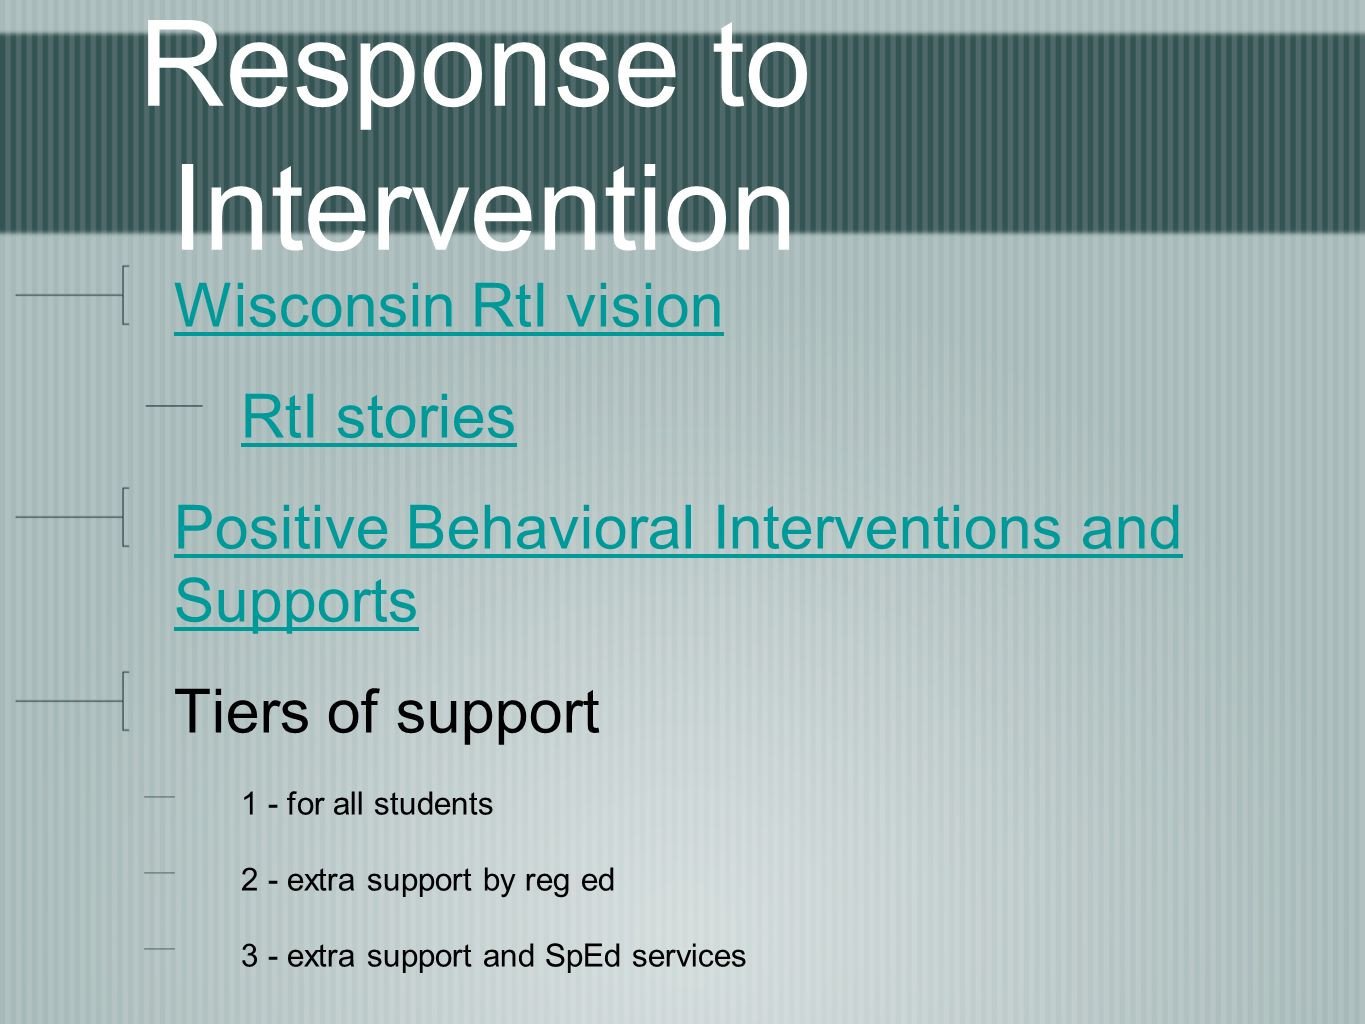 Response to Intervention Wisconsin RtI vision RtI stories Positive Behavioral Interventions and Supports Tiers of support 1 - for all students 2 - extra support by reg ed 3 - extra support and SpEd services